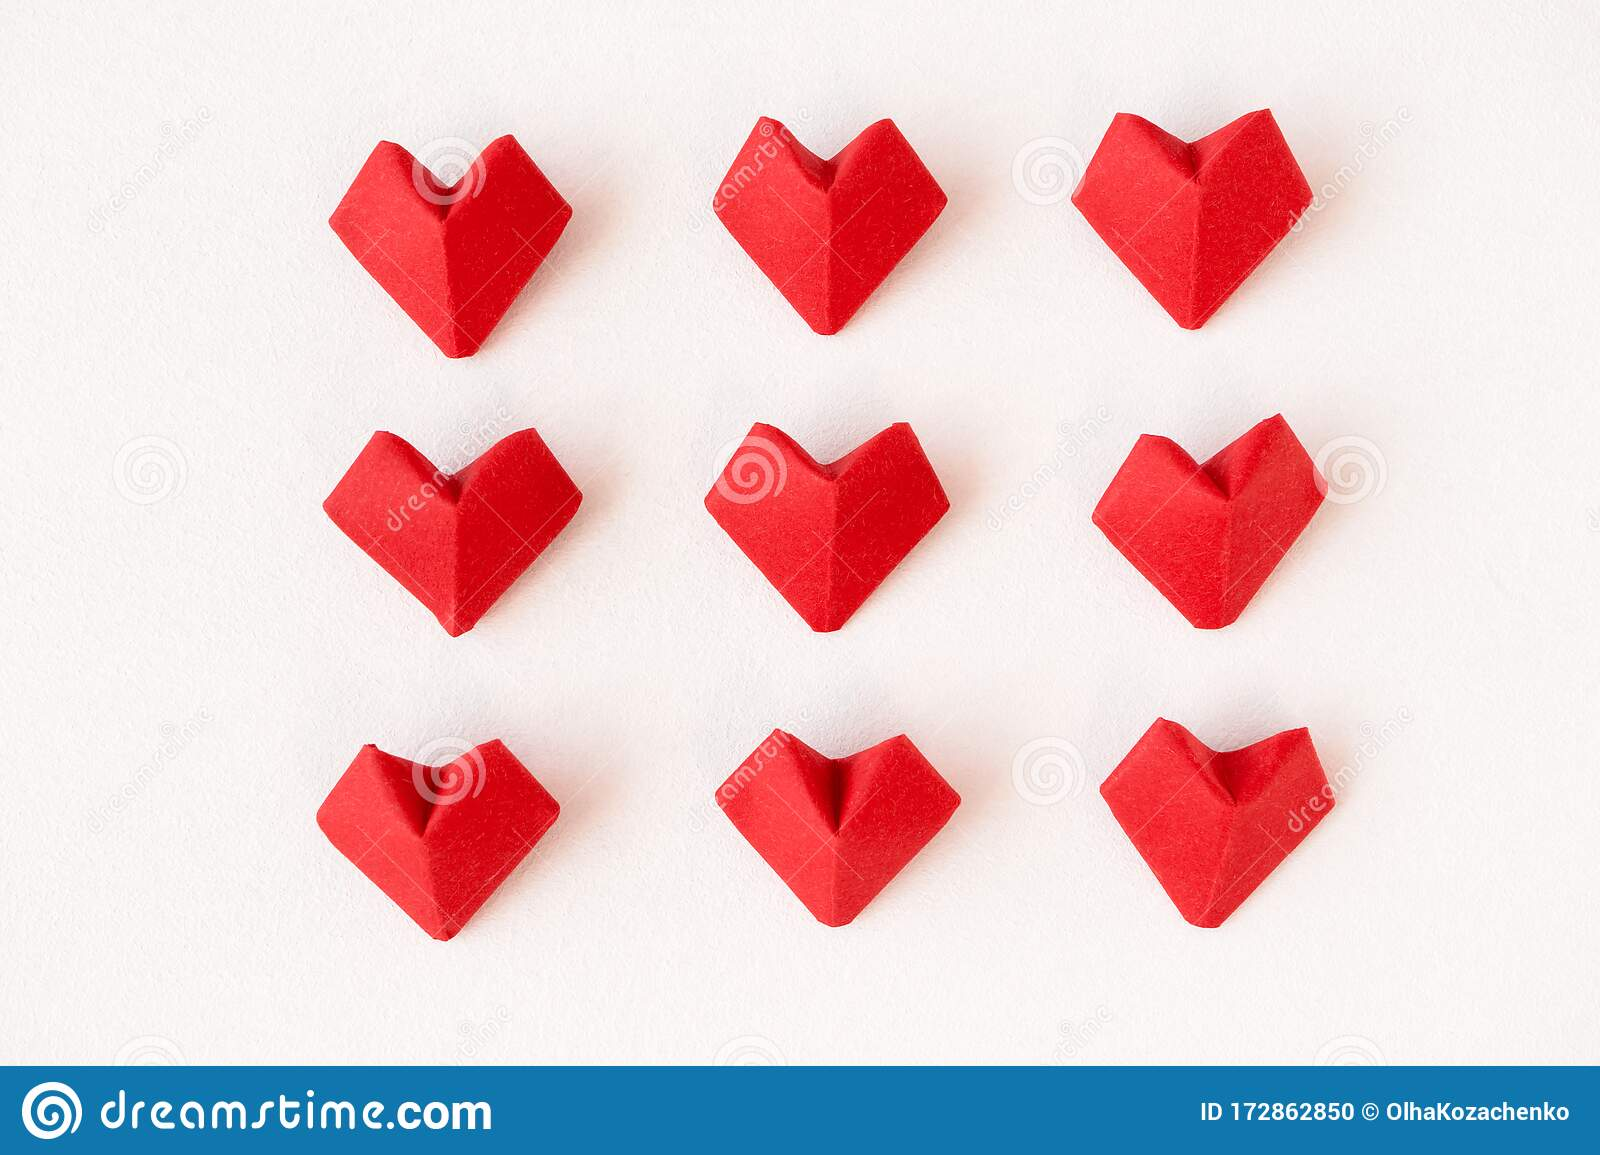 How To Make An Origami Heart - Folding Instructions - Origami Guide | 1155x1600